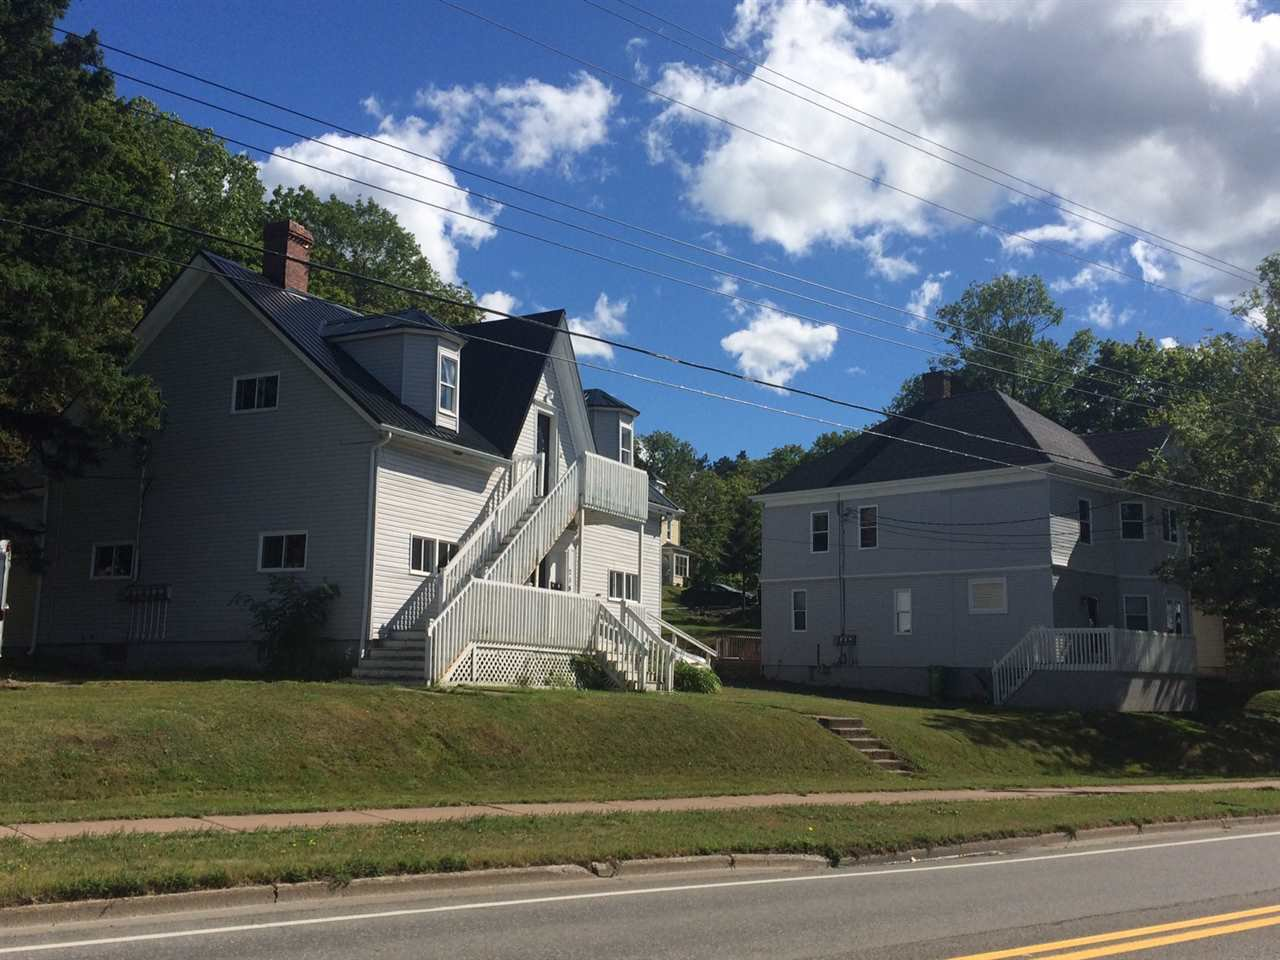 Main Photo: 230-8 North Provost Street in New Glasgow: 106-New Glasgow, Stellarton Multi-Family for sale (Northern Region)  : MLS®# 202017376